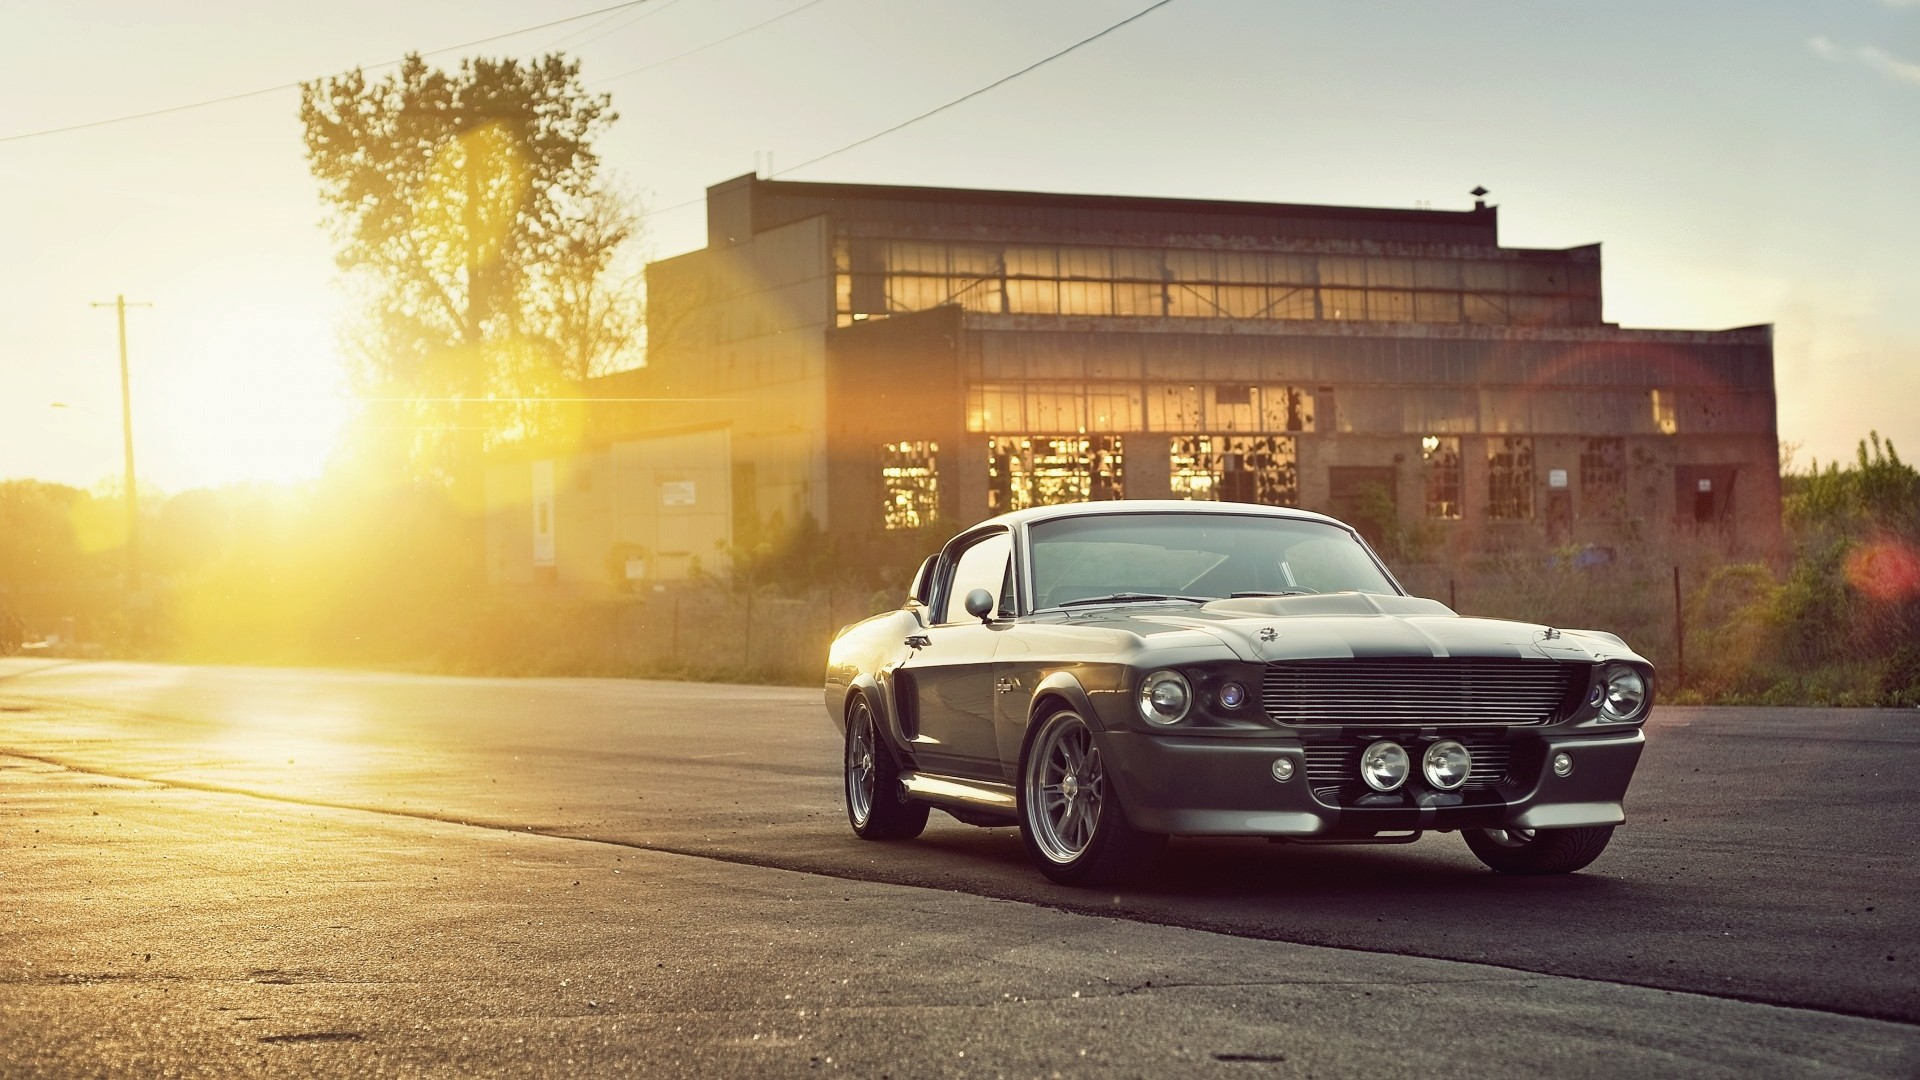 Original Mustang Shelby >> Cars vehicles Ford Mustang Eleanor Shelby GT500 wallpaper   1920x1080   60898   WallpaperUP